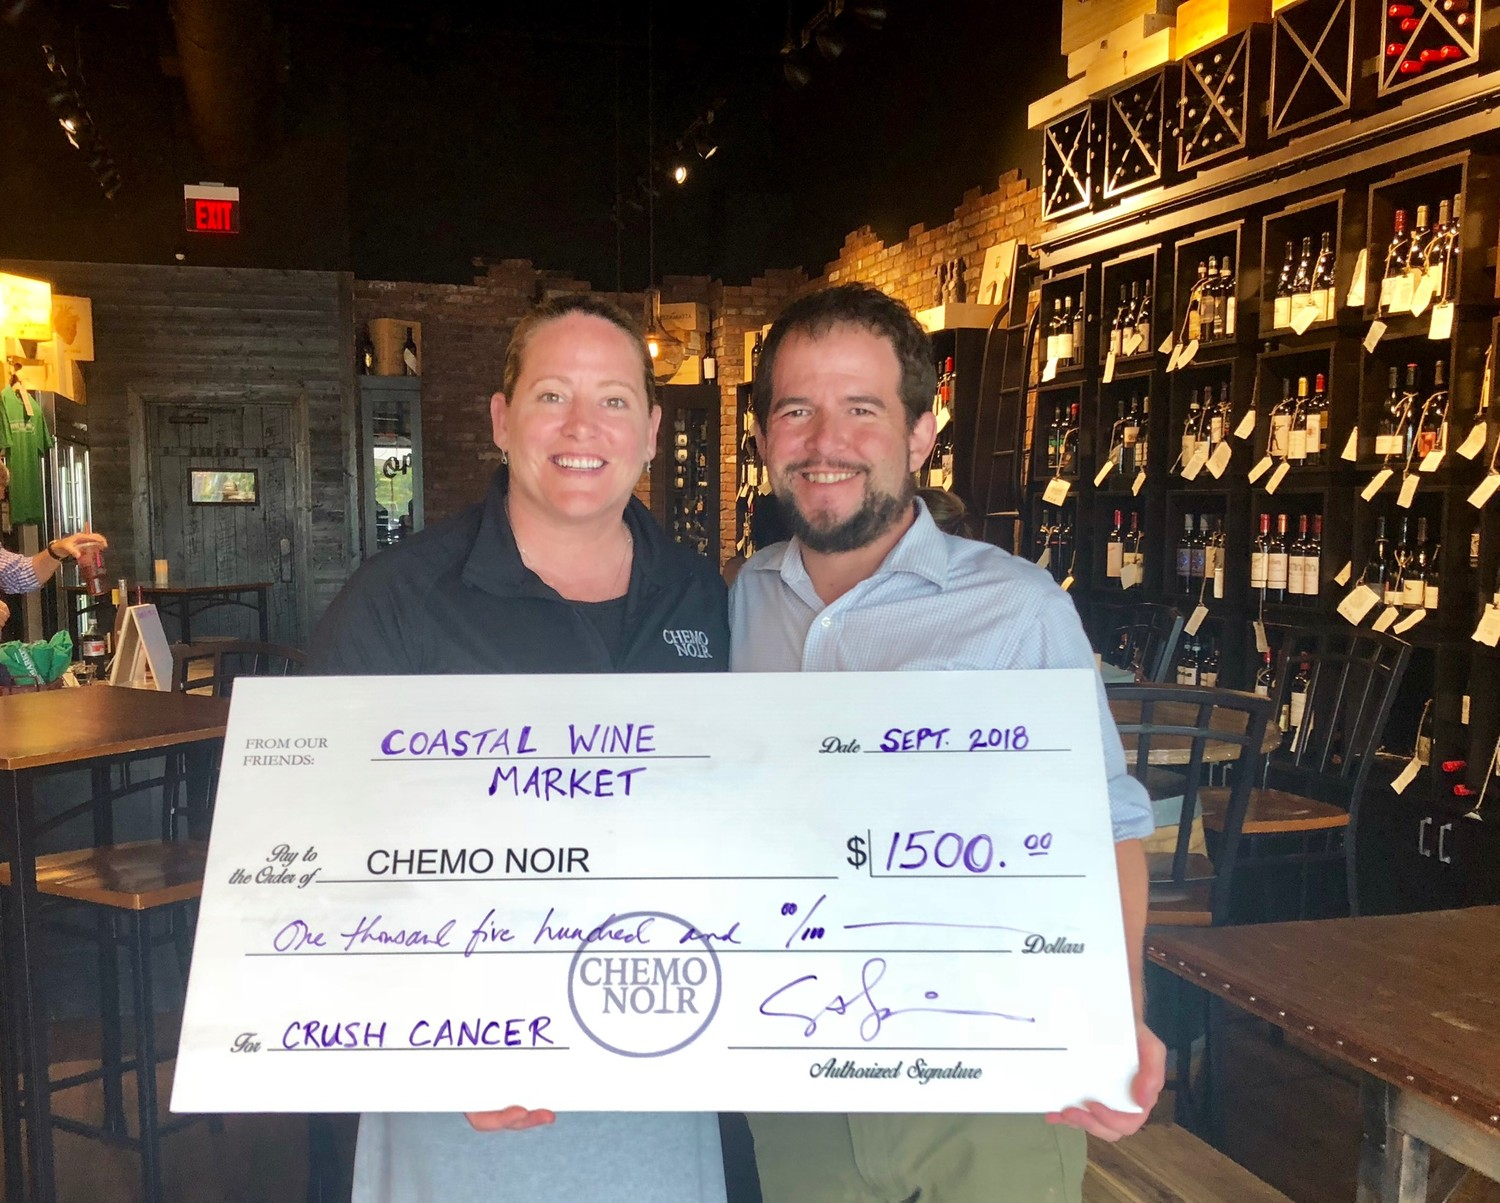 Katrin Casey, the founder of local nonprofit Chemo Noir, receives a check donation from Steven Lourie, co-owner of Coastal Wine Market & Tasting Room, for $1,500. The nonprofit, which provides financial support for cancer patients undergoing treatment, raised the funds at a recent CRUSH Cancer event held at the local wine shop.